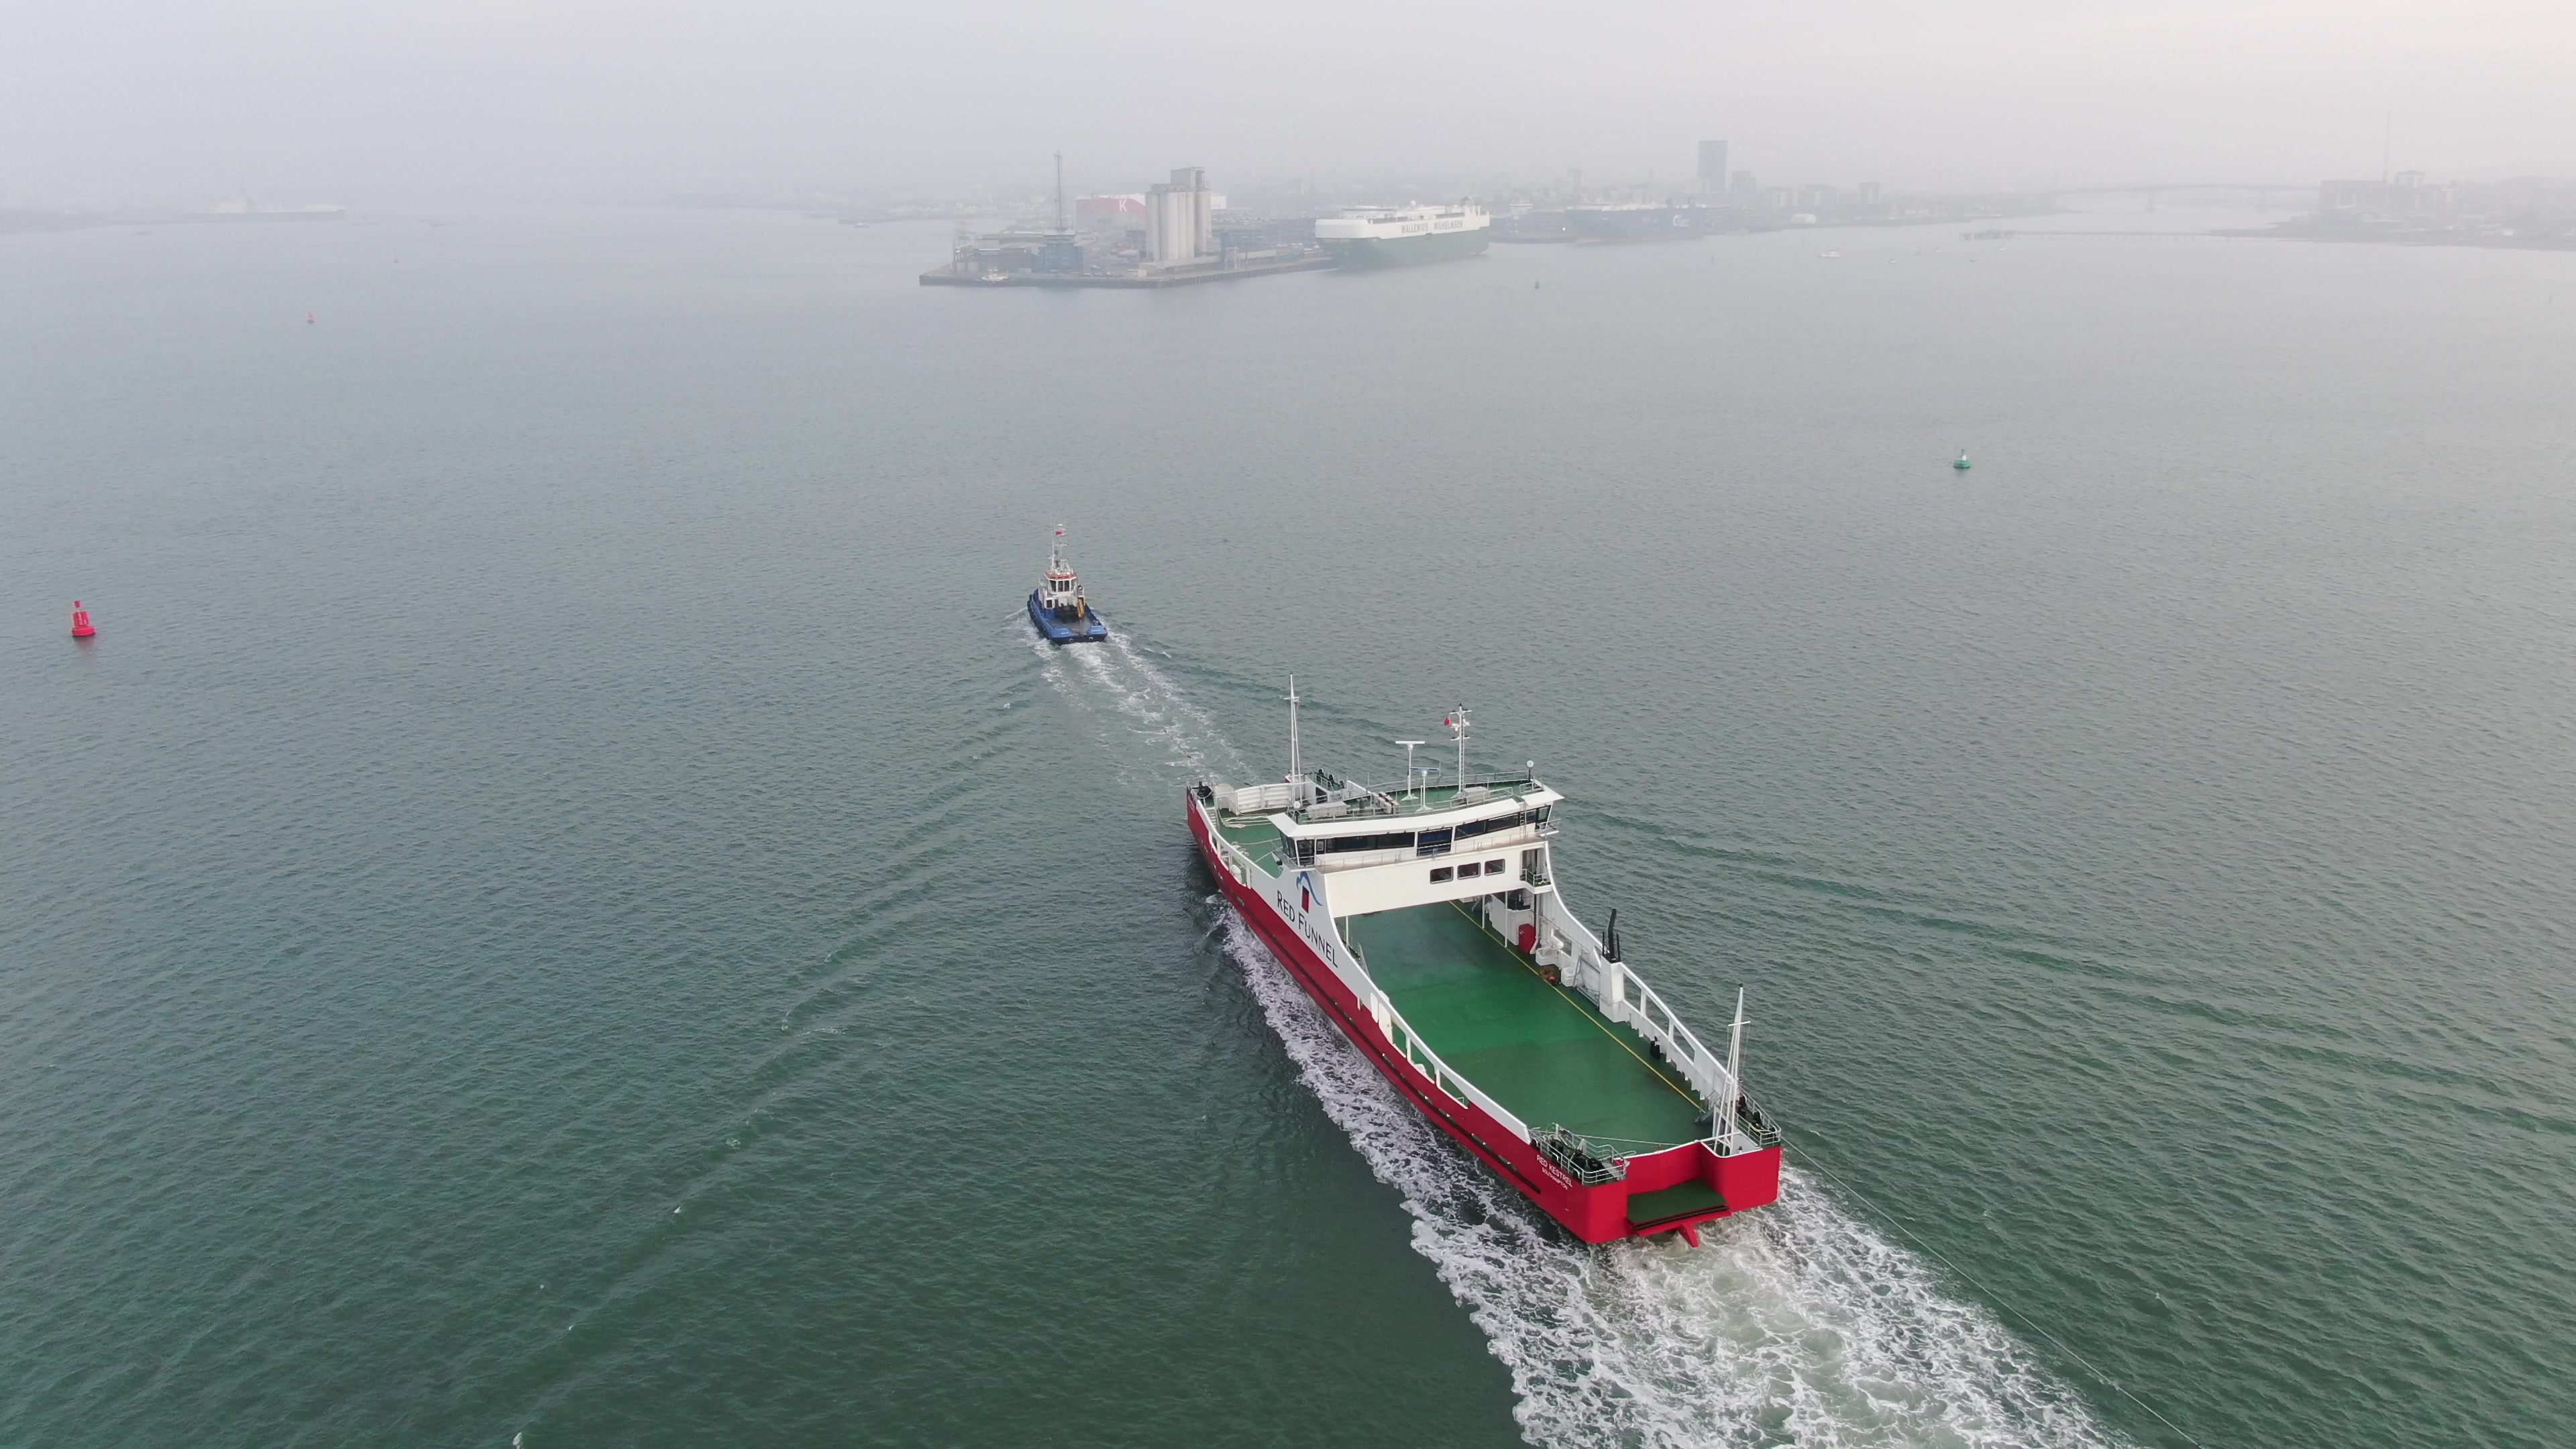 Willpower towing Red Kestrel into Southampton